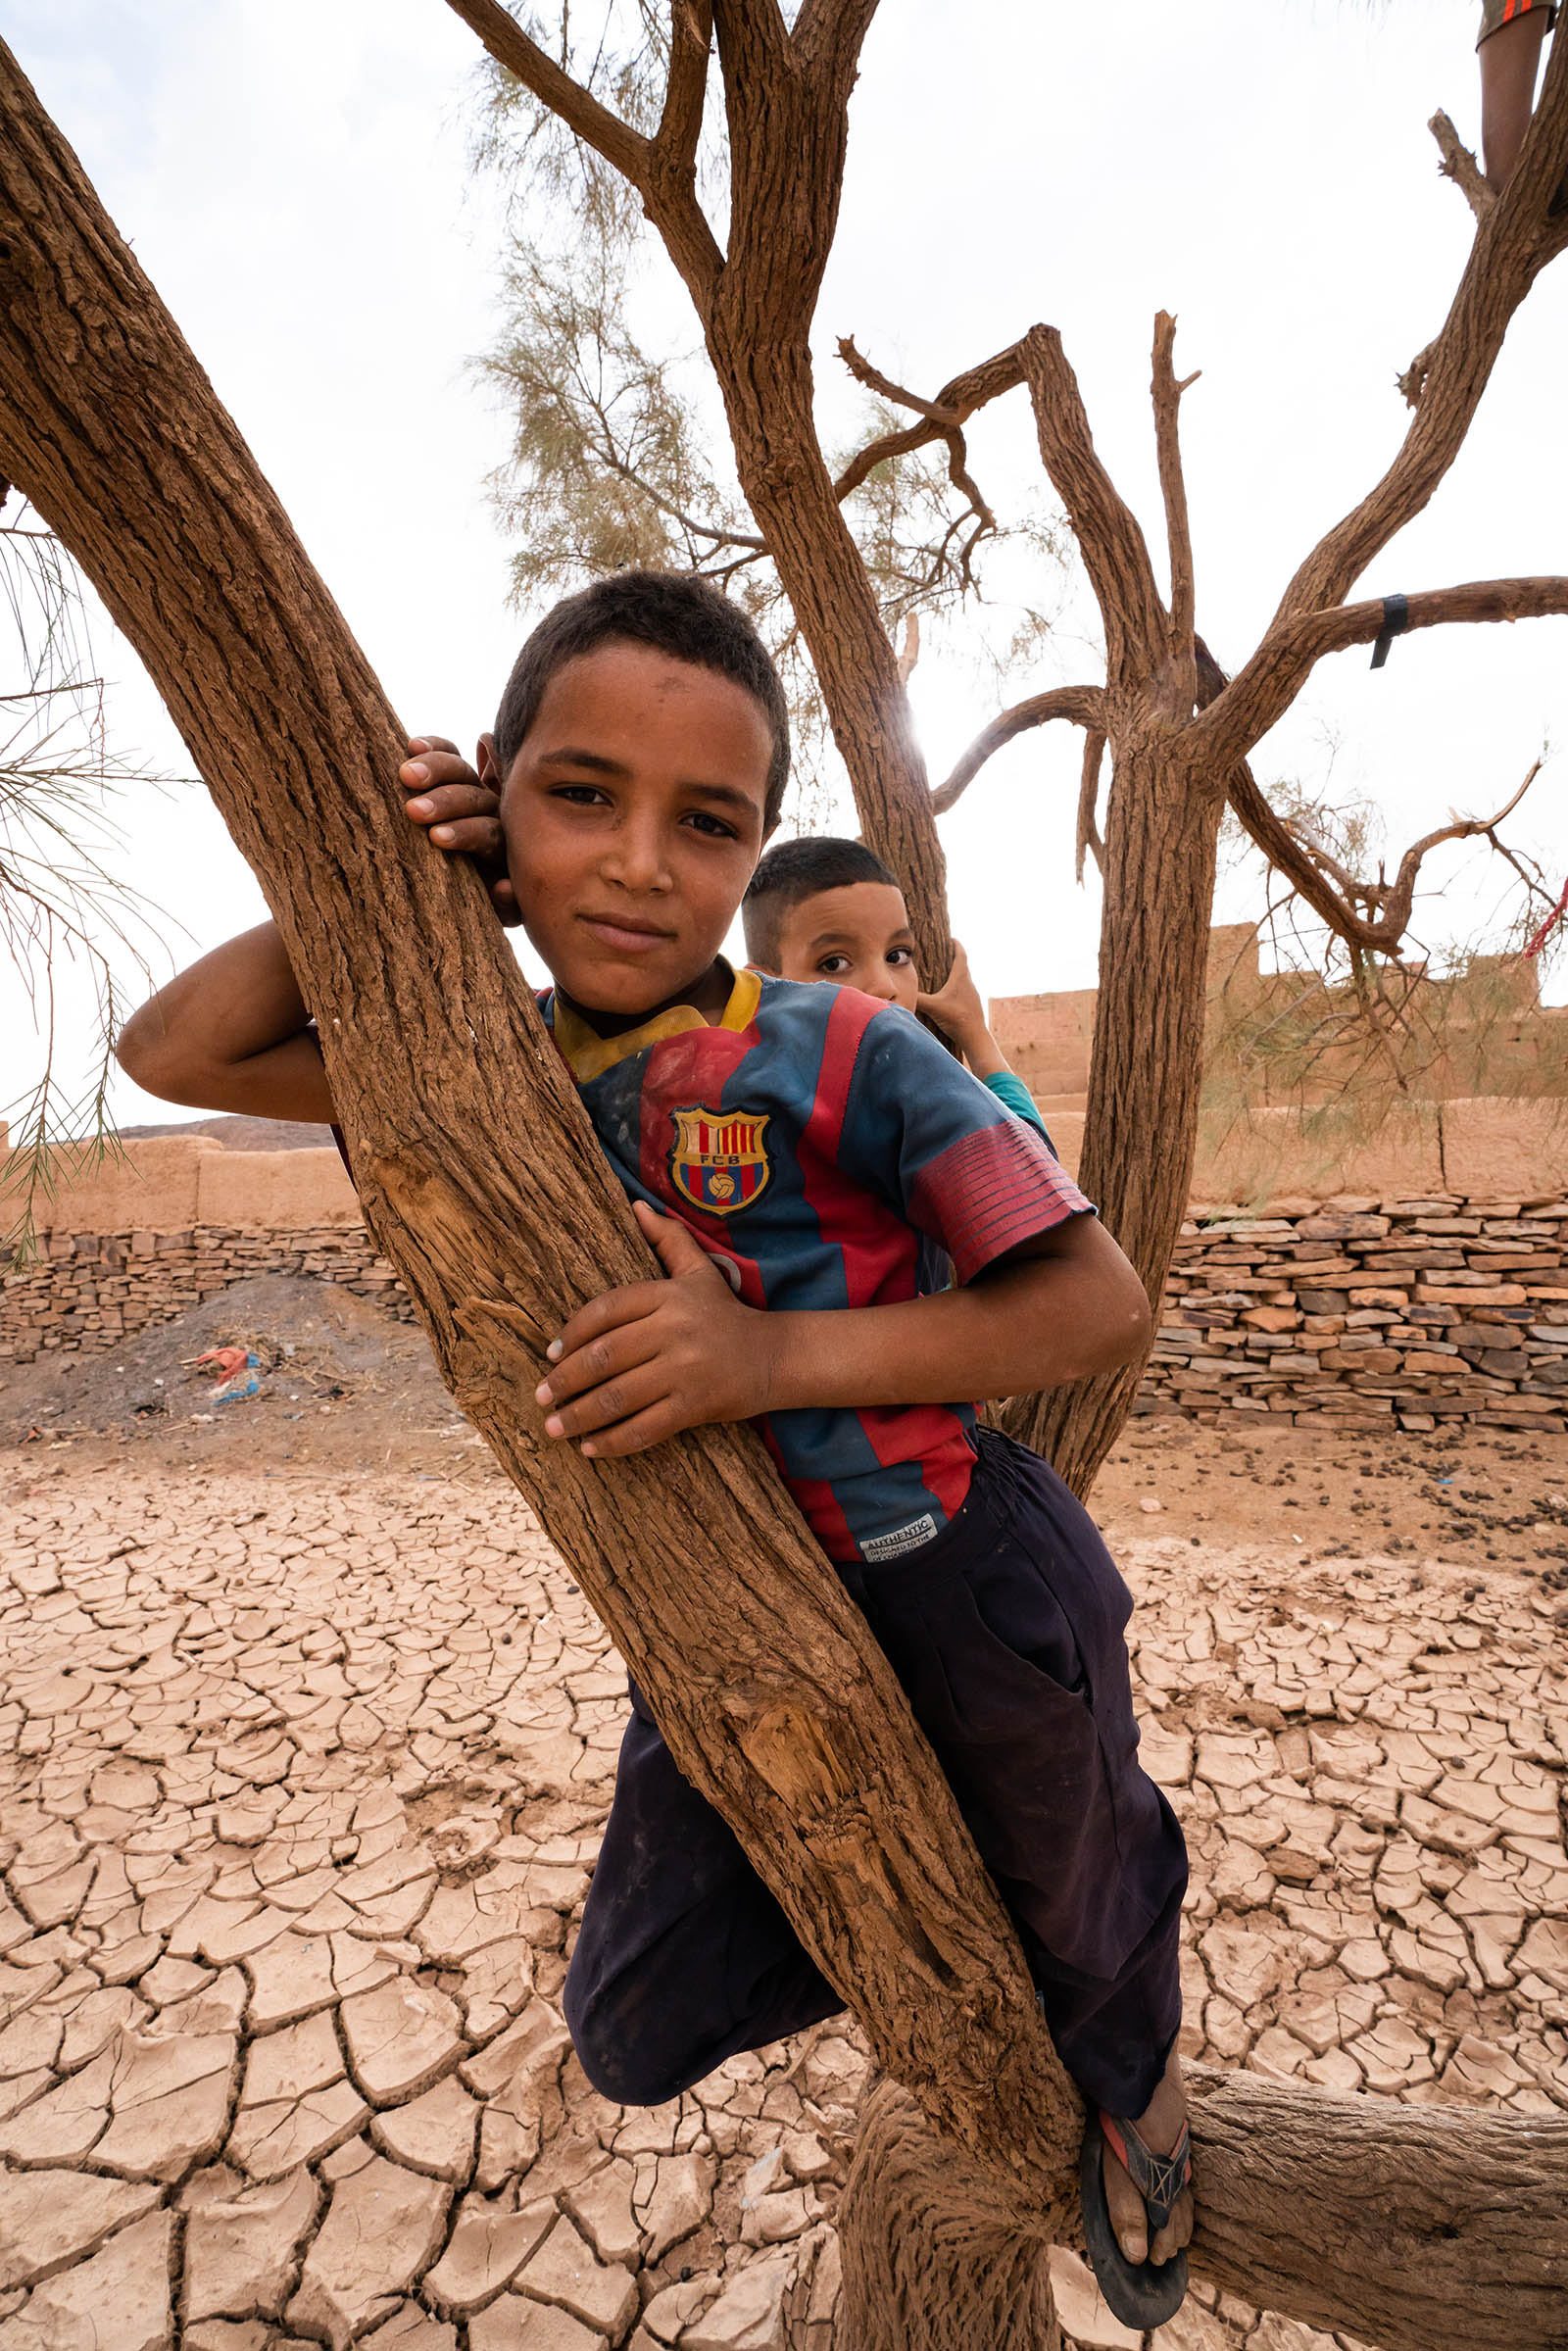 two boys pose for a picture in Tafraoute, Morocco